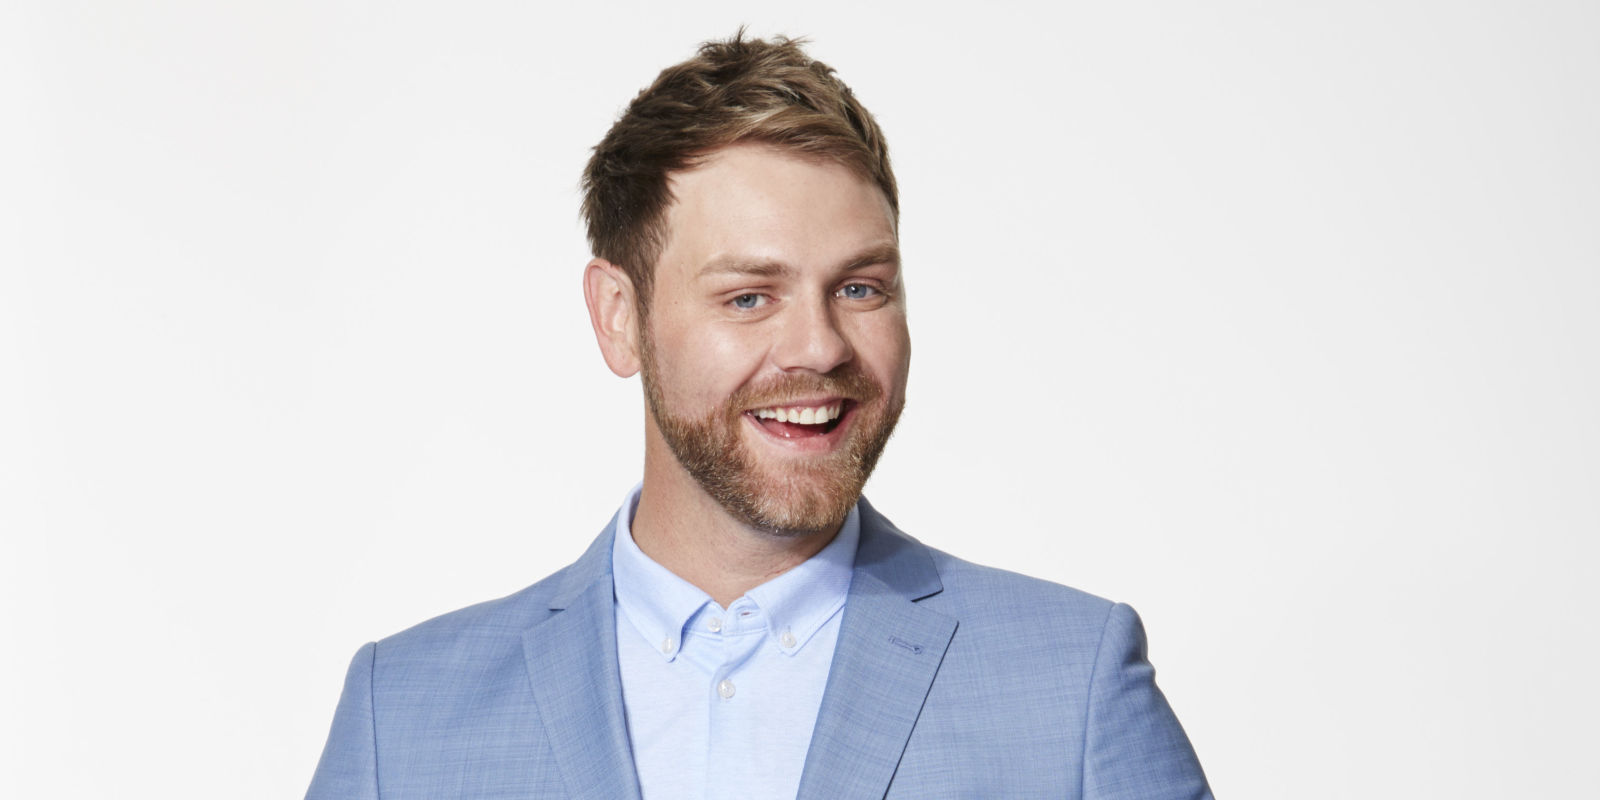 brian mcfadden has signed up for the new series of the jump